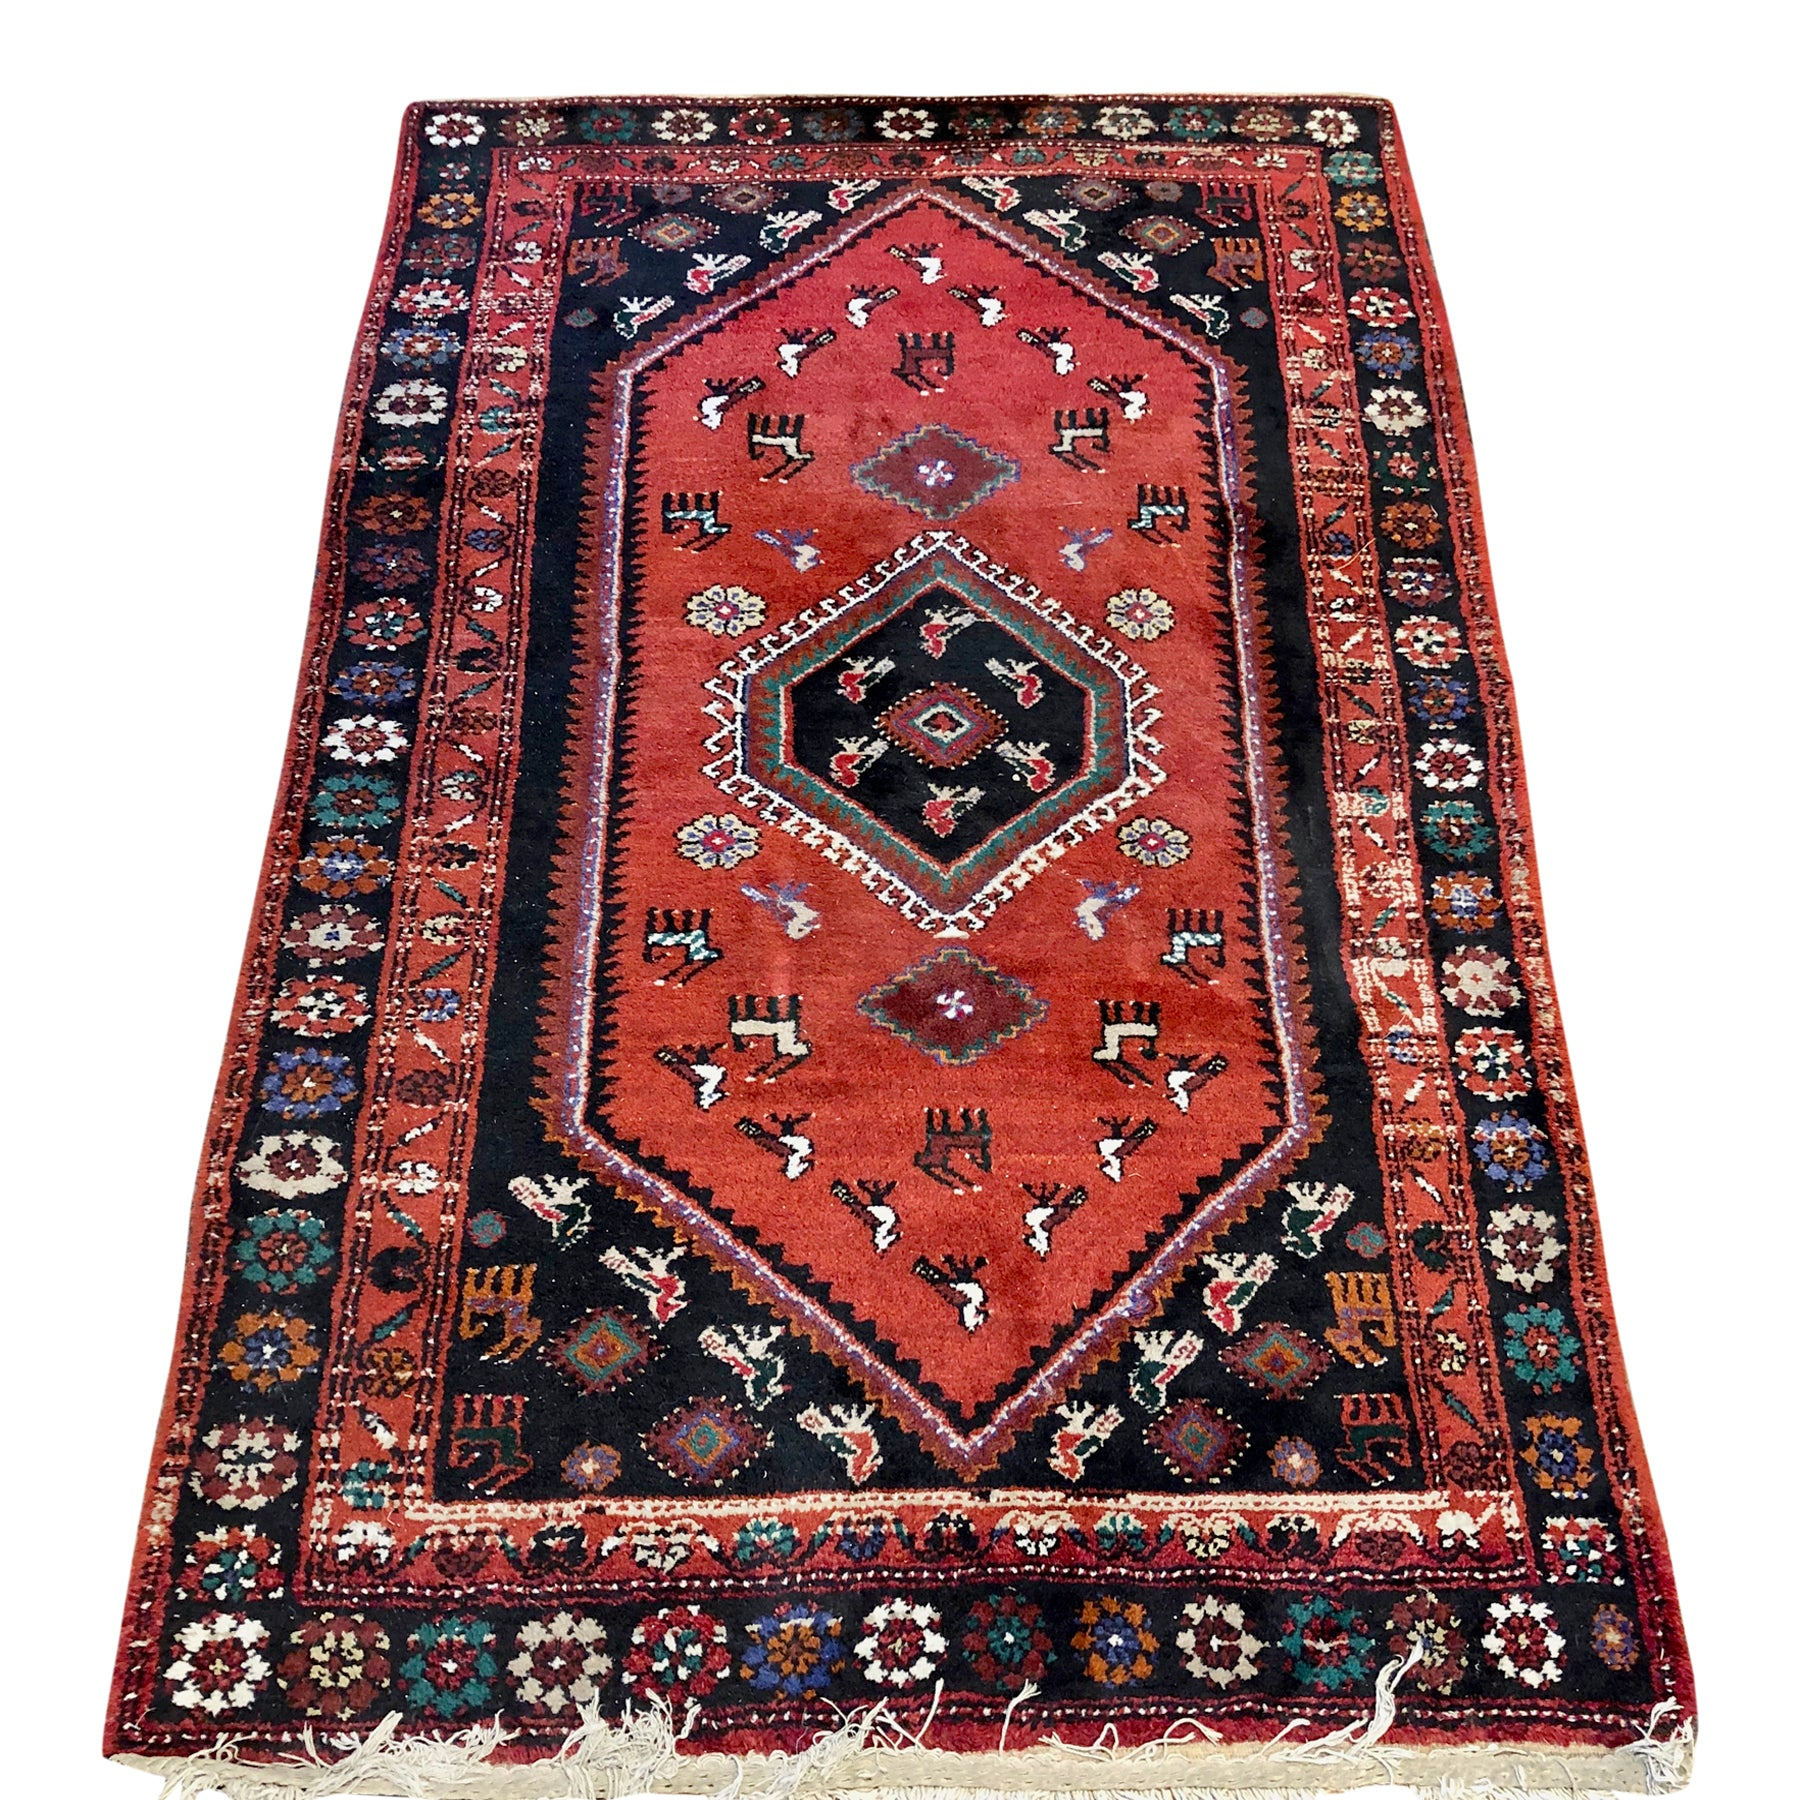 R73: Vintage Handmade Oriental Rug with Animal and Spider Motifs Throughout 4'1